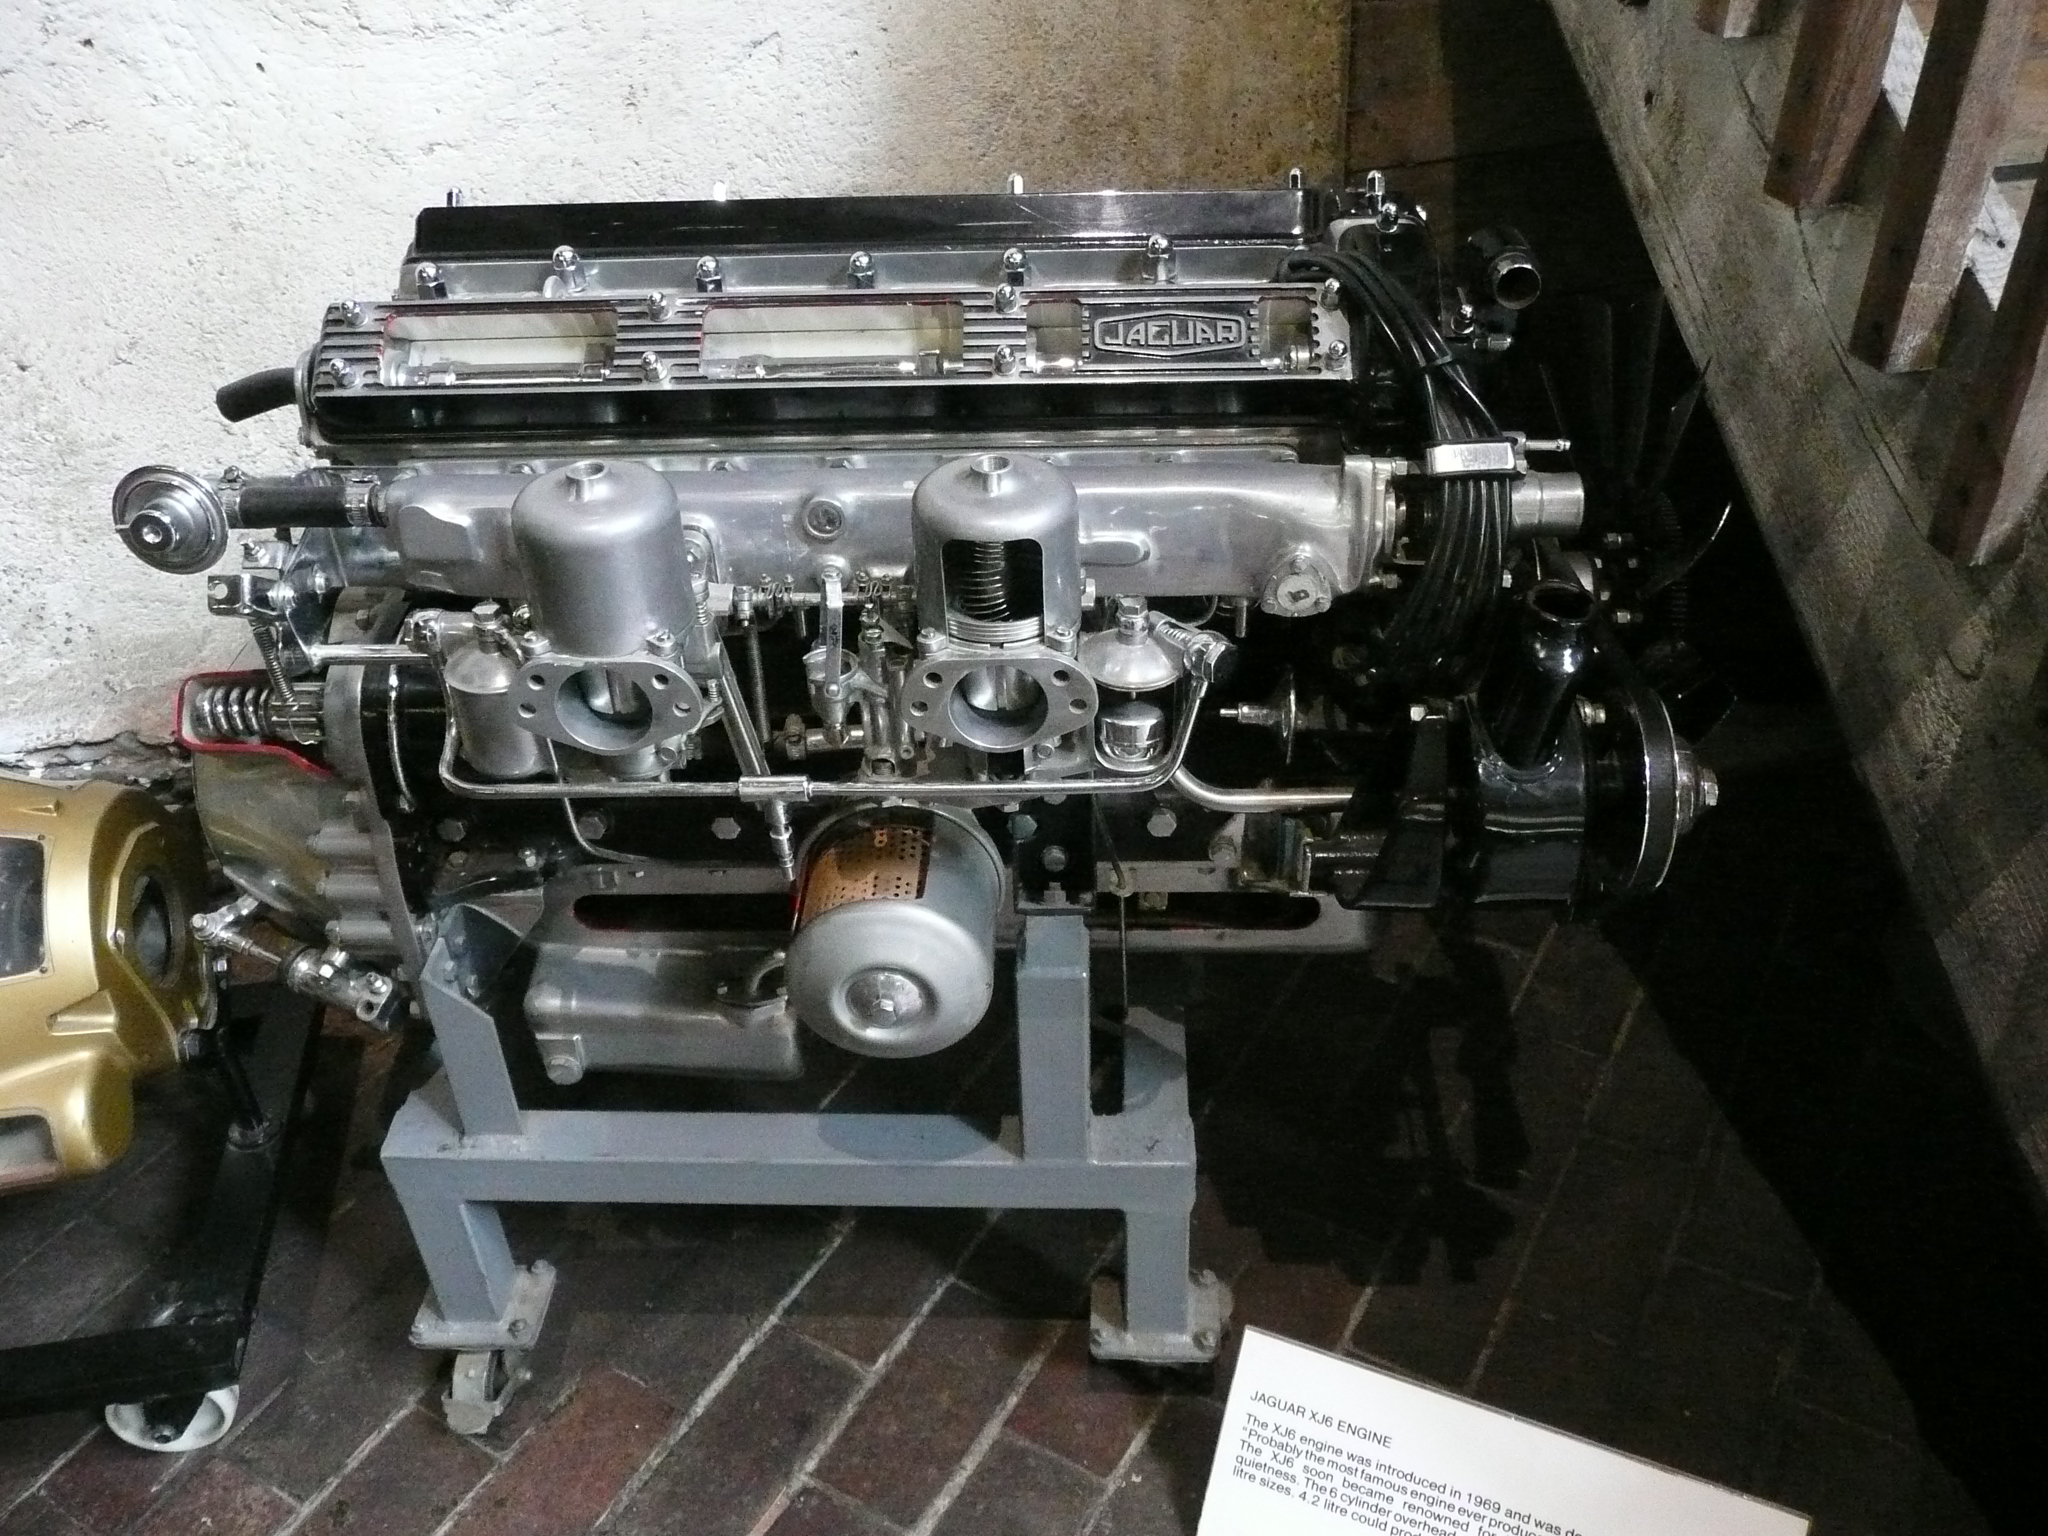 Description 1969 Jaguar XJ6 Engine JPG